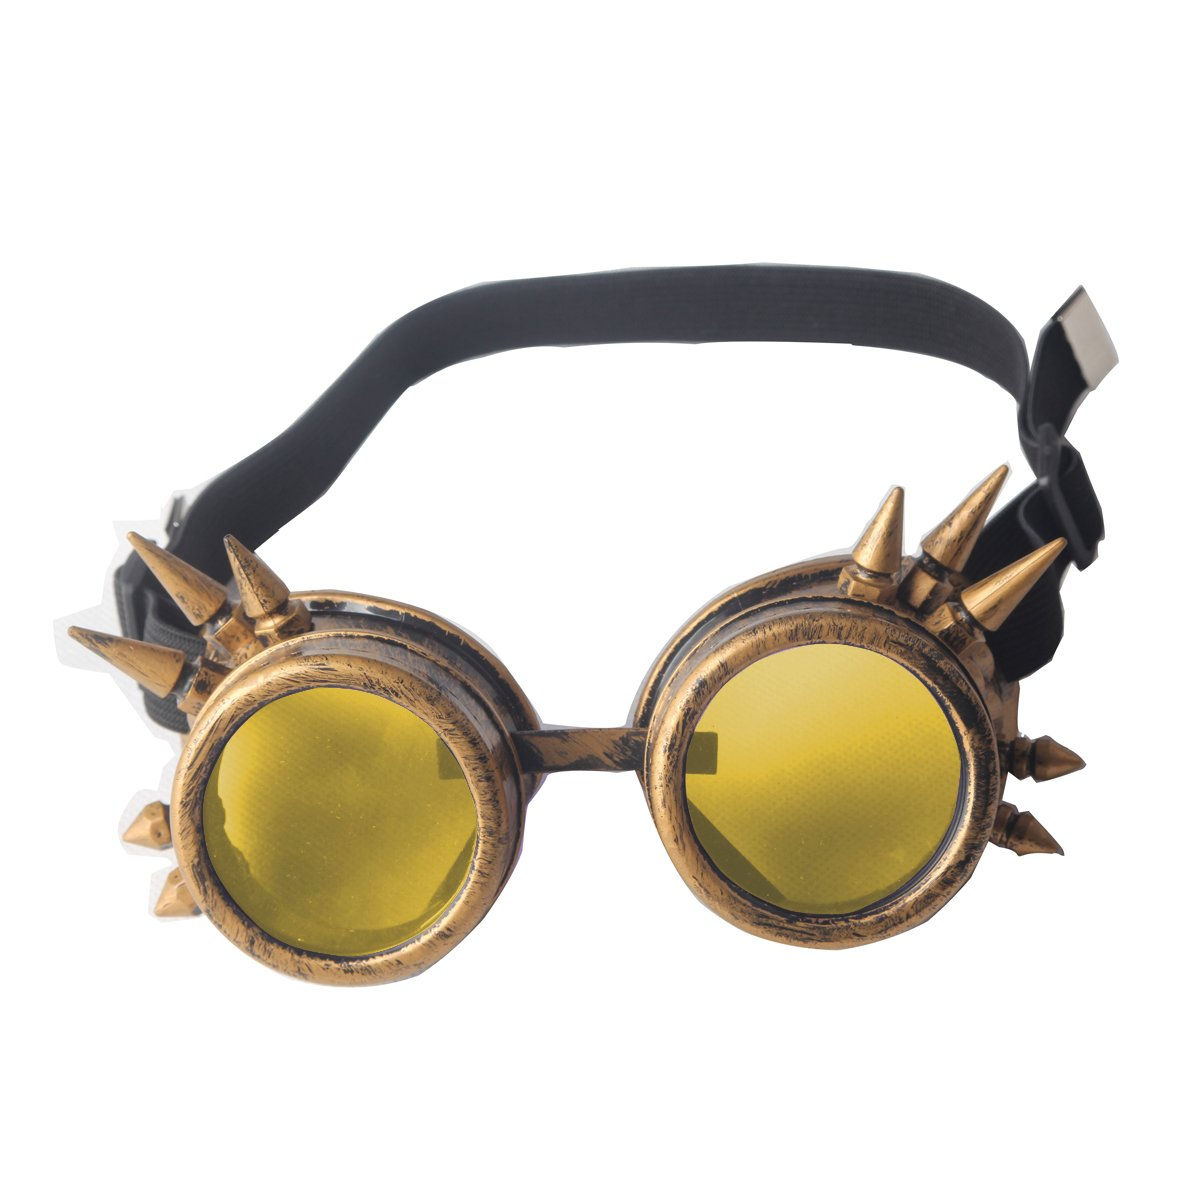 Hallowmas Cosplay Goggles, Punk Style Glasses Spiked Steampunk Goggles BEST for Christmas, Festival G003-B-3+G004-BL-12*2